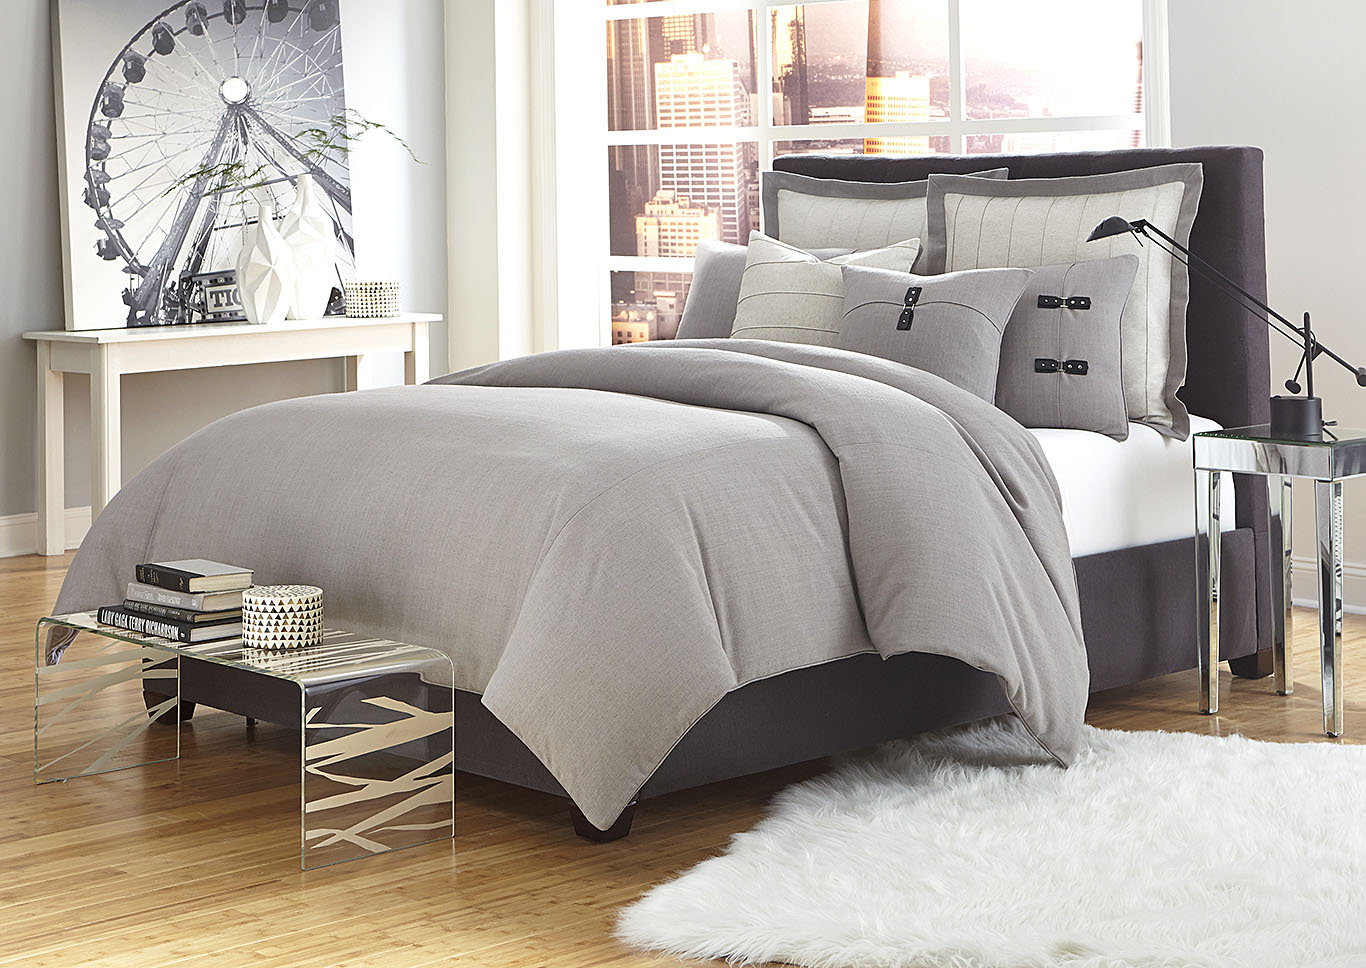 Fusion Grey 8 pc. King Duvet Set,AICO